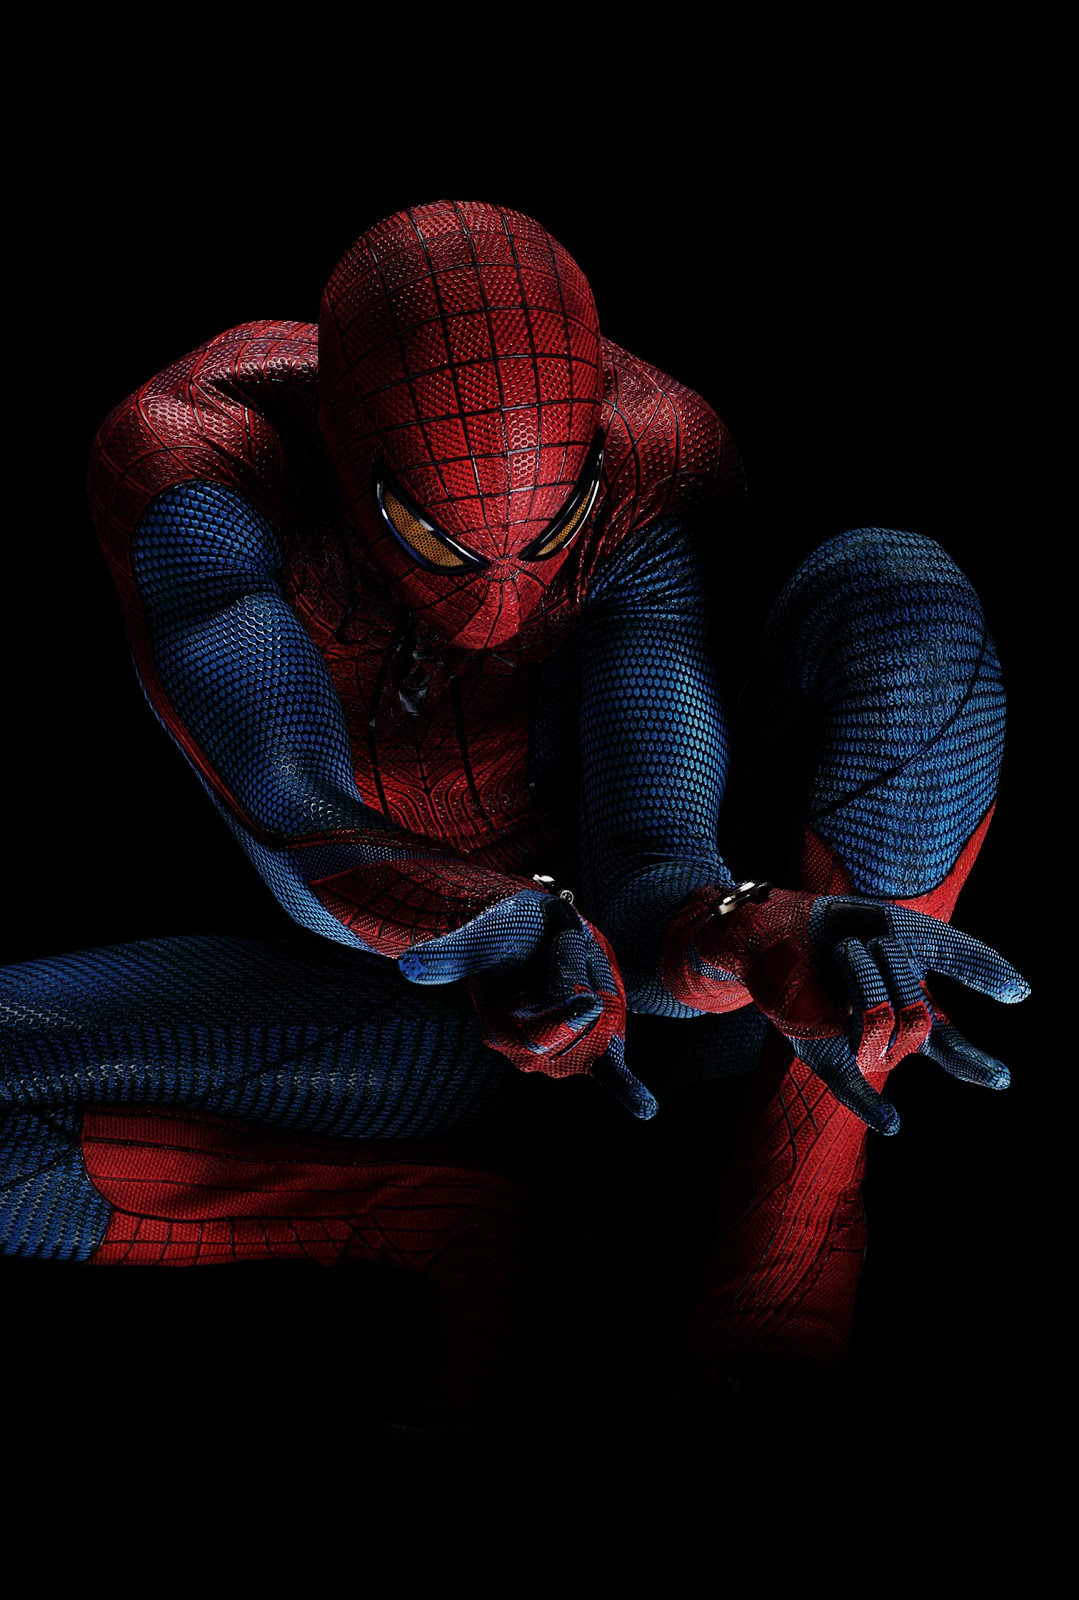 The Amazing Spider Man Movie Watch Online Download andhramirchi